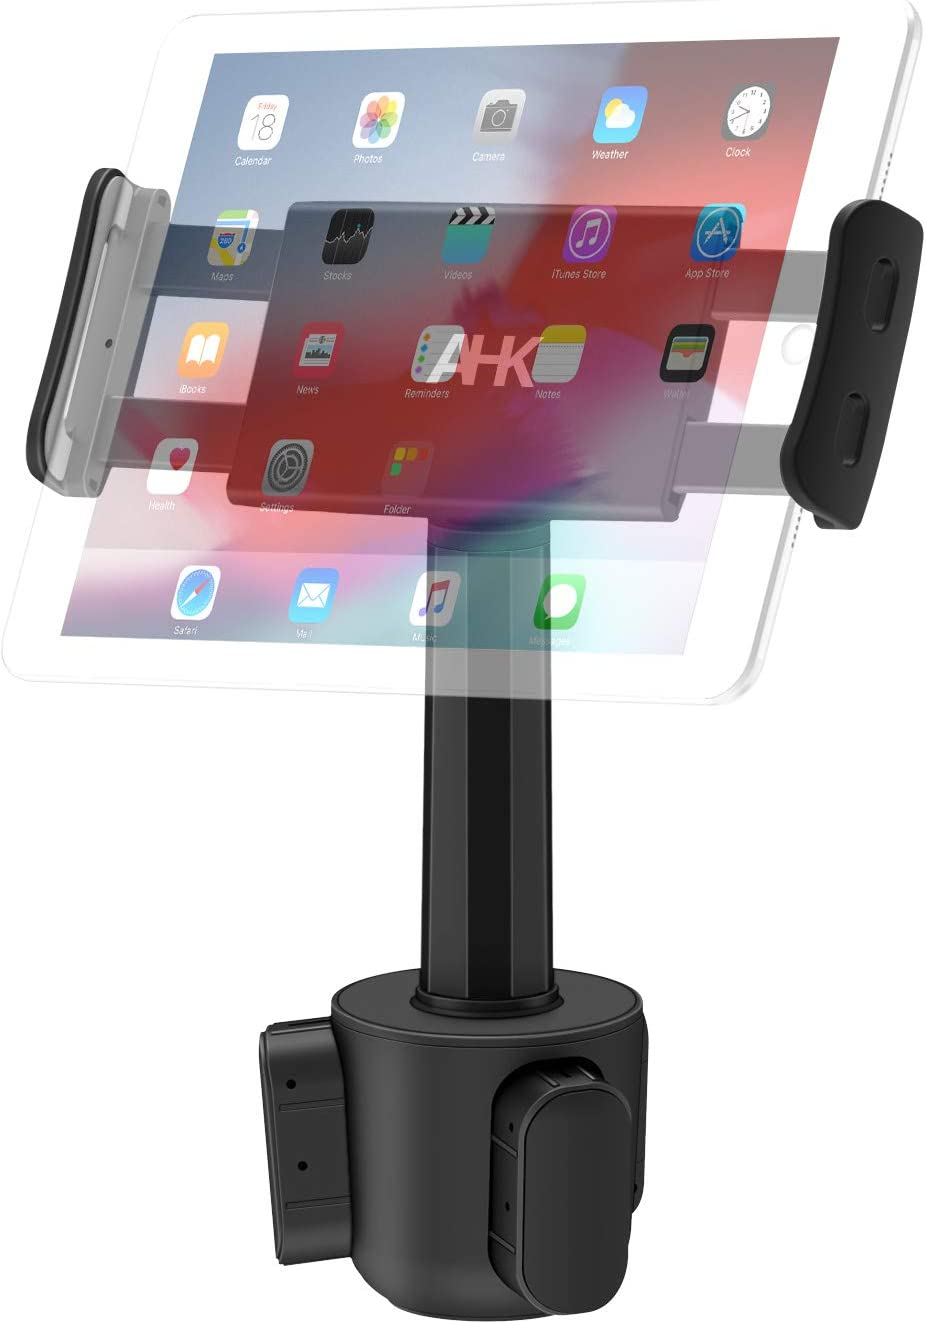 "Car Cup Holder Tablet Mount, AHK Universal Tablet & Smartphone Car Cradle Holder for iPad Pro/Air/Mini, Kindle,Tablets Nintendo Switch Smartphones, Compatible with 4.4"" to 11"" Devices"